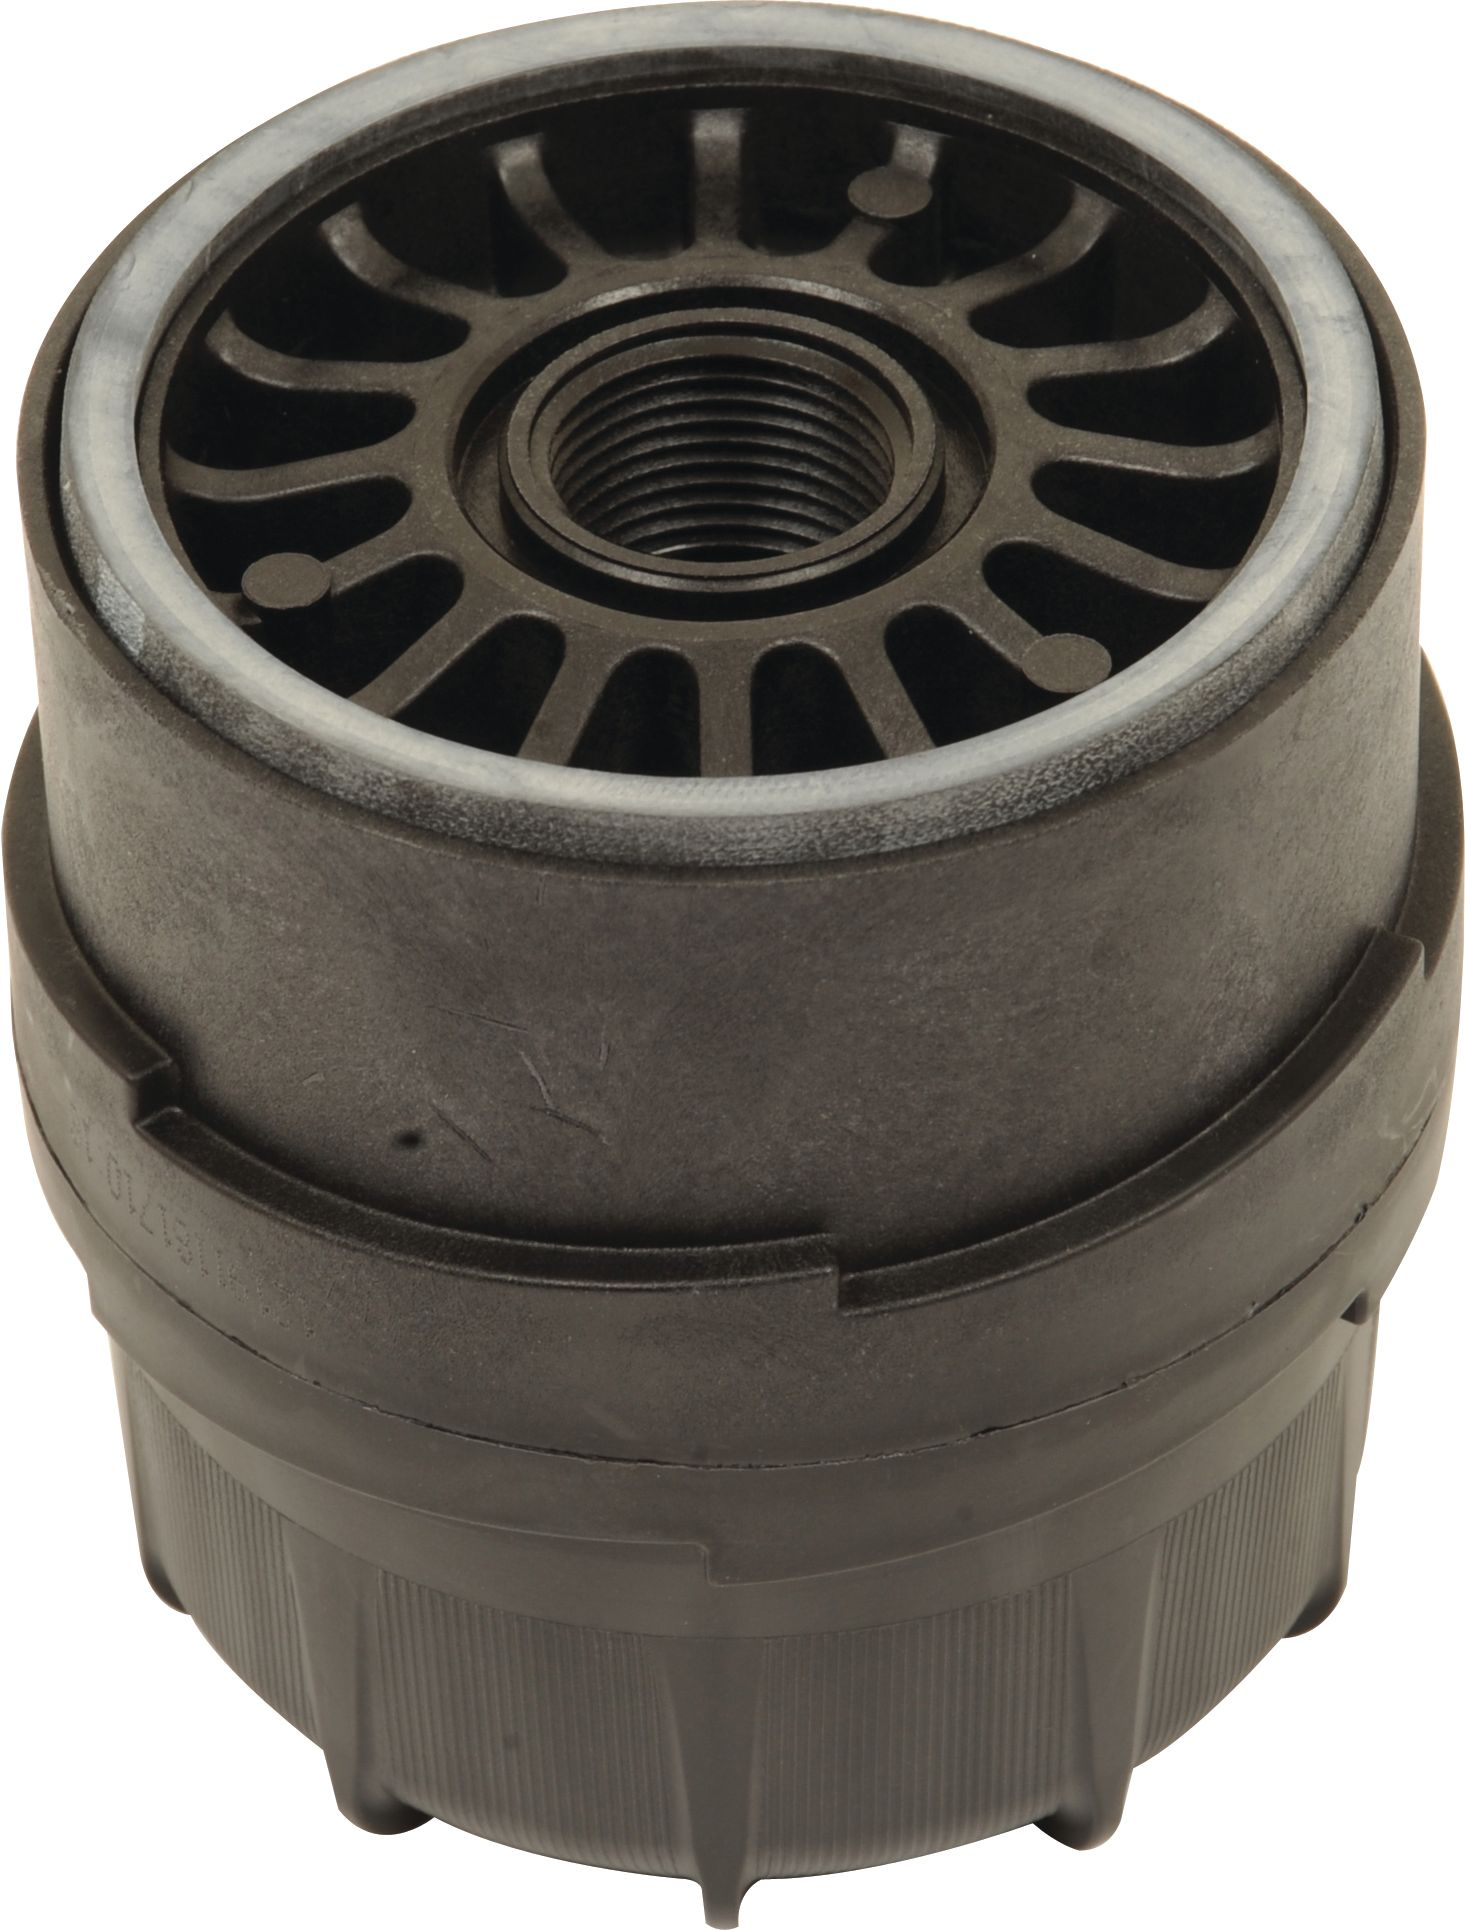 KUBOTA FUEL FILTER FF42003 109048